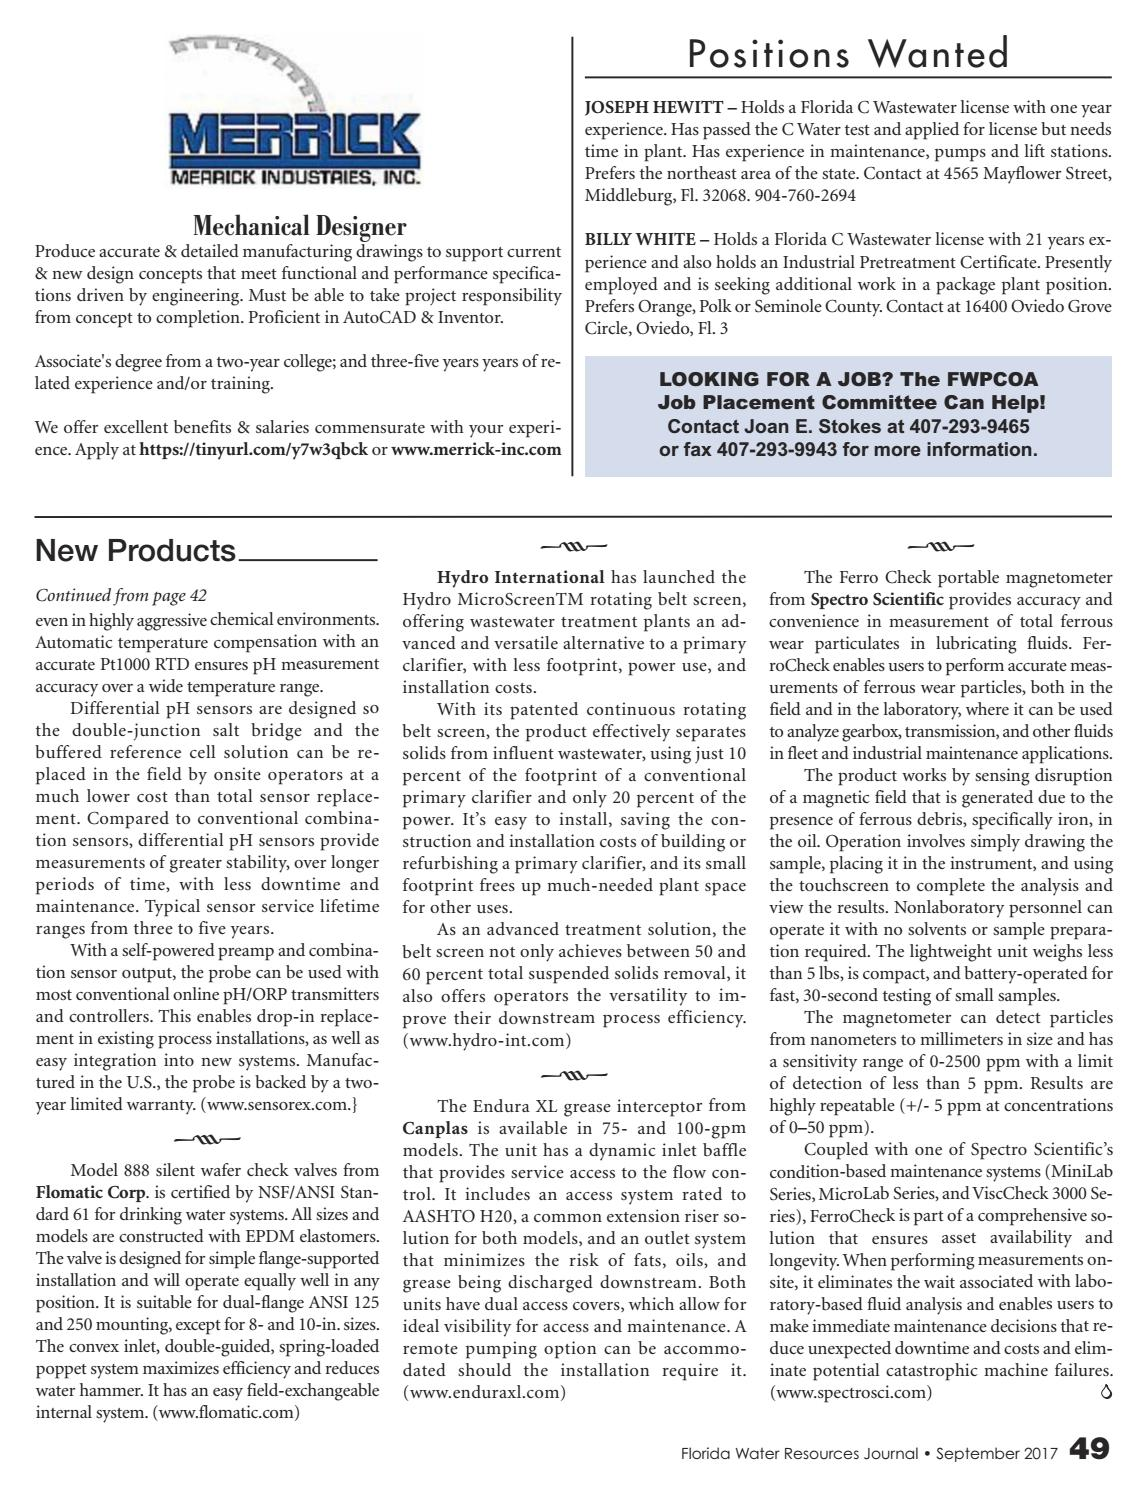 Florida Water Resources Journal -September 2017 by Florida